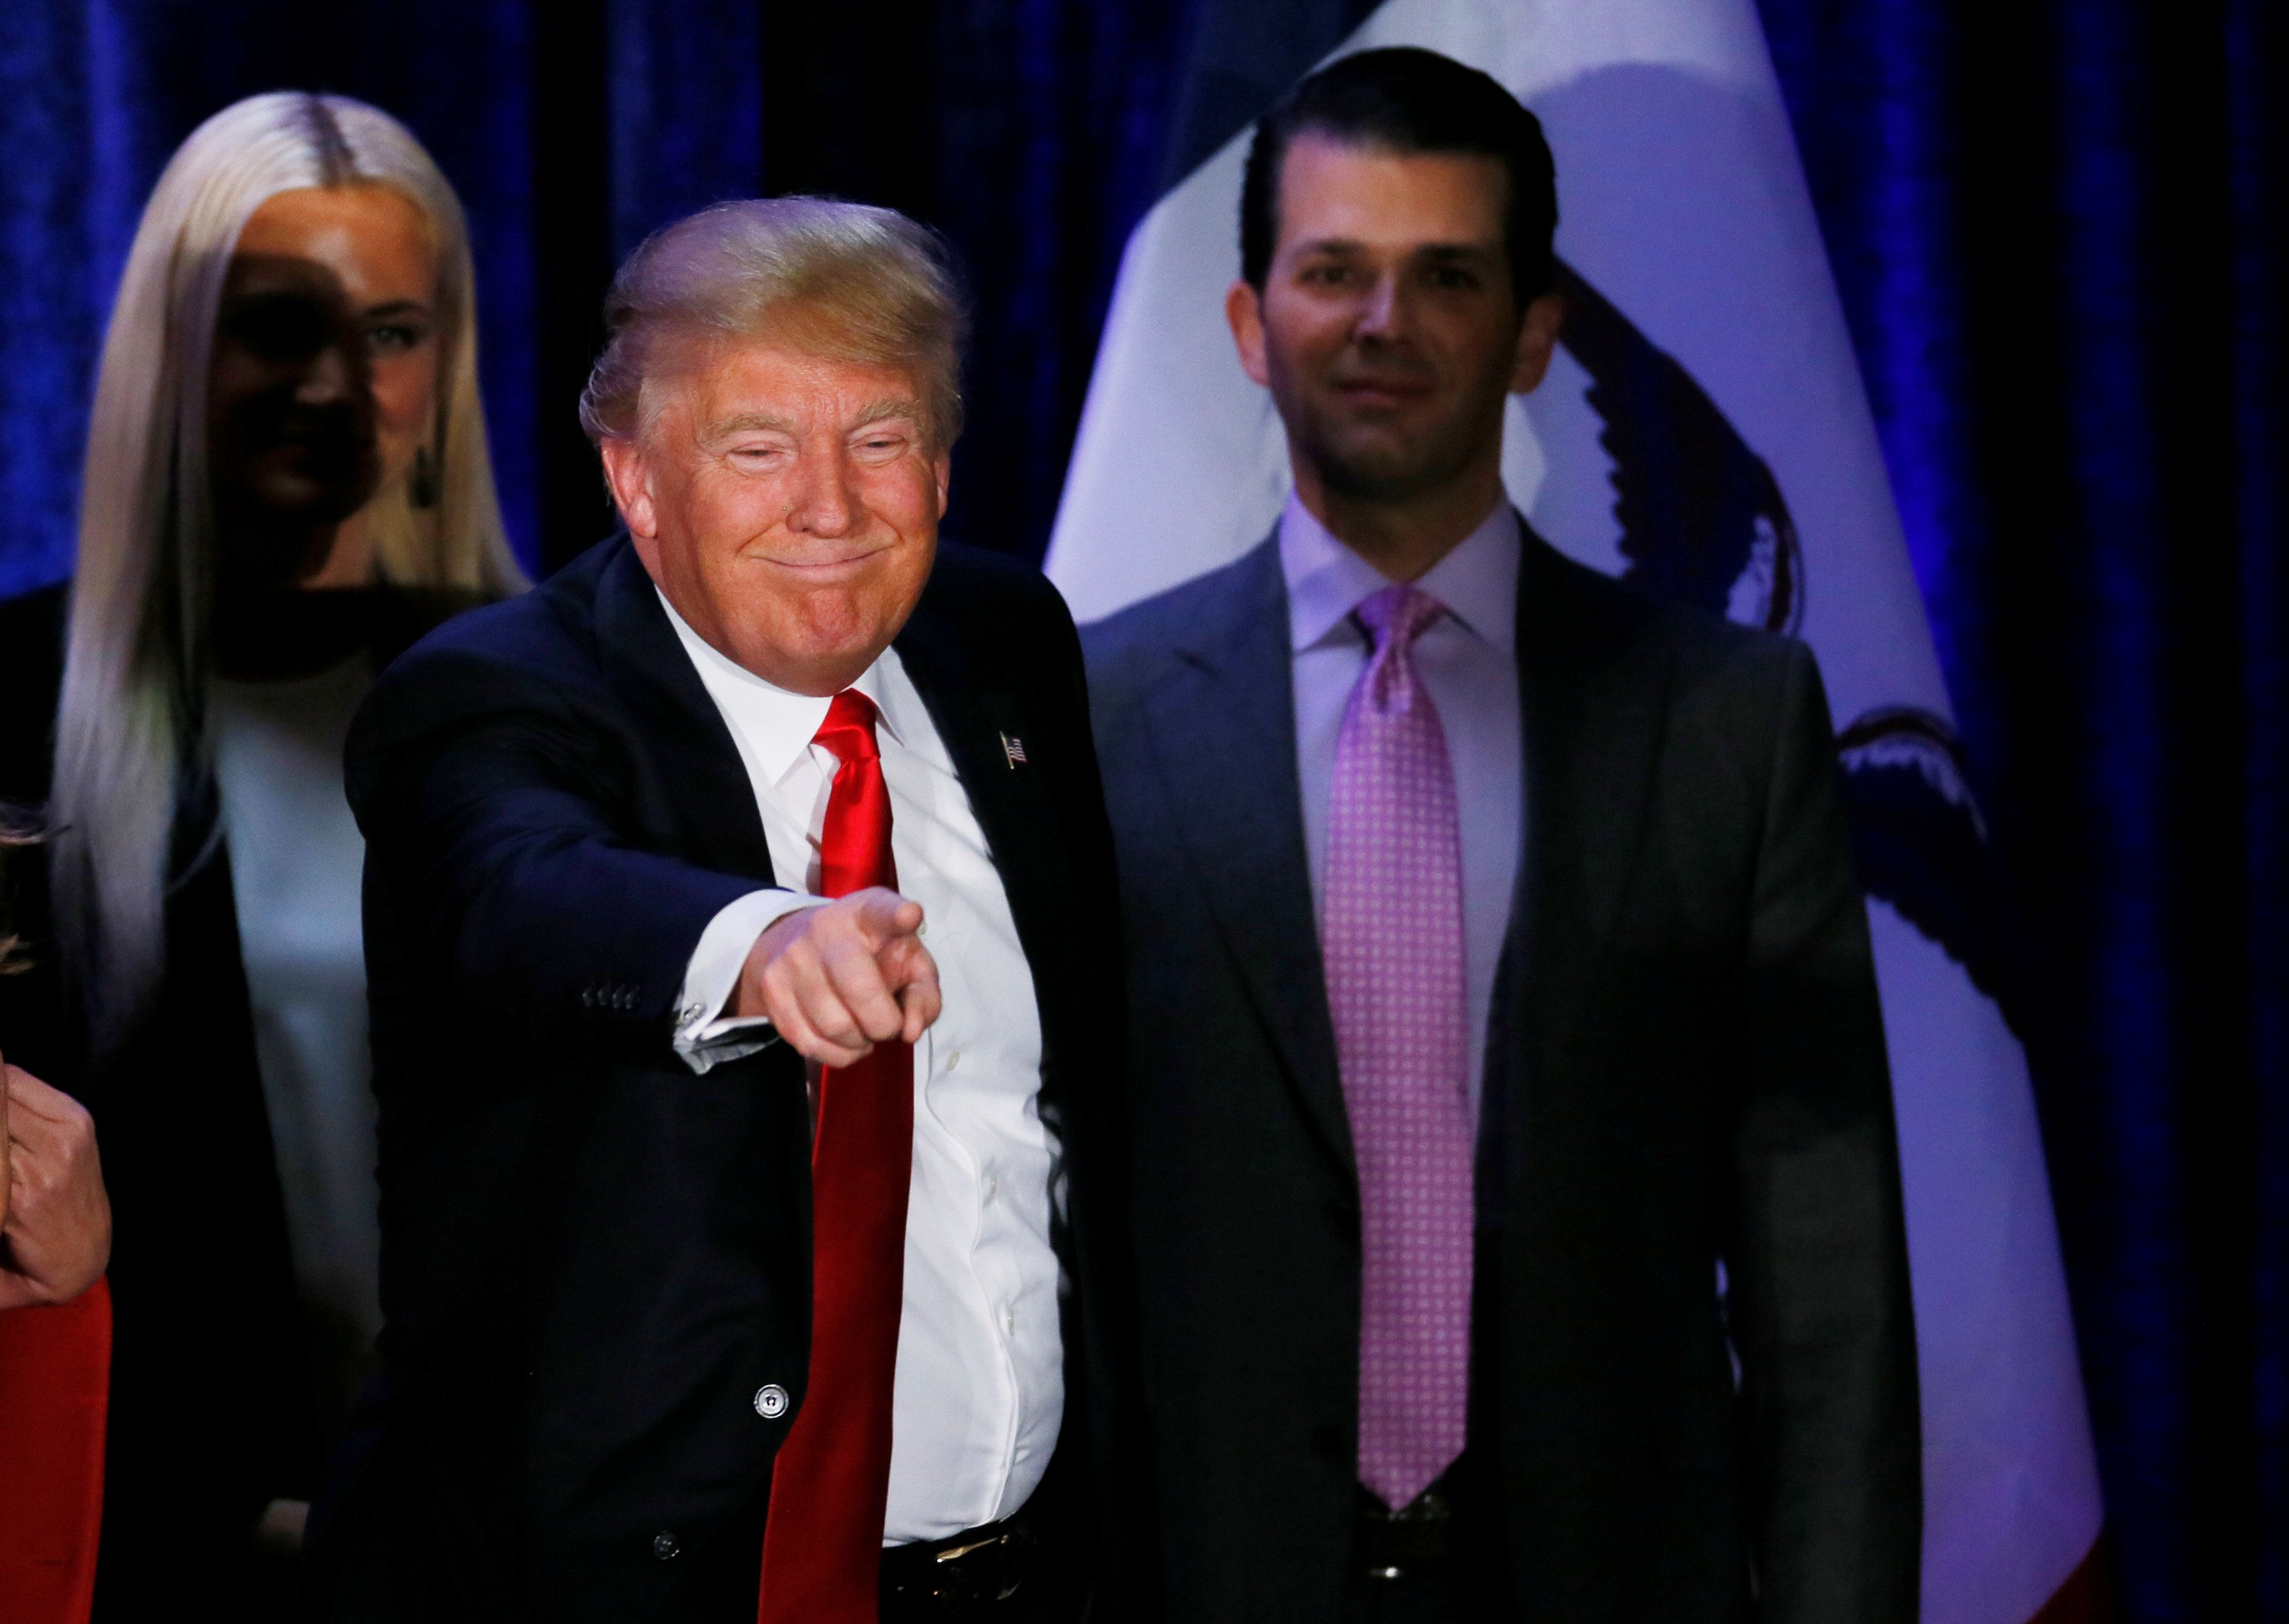 Republican U.S. presidential candidate Donald Trump gestures to the crowd as he leaves the stage flanked by his son Donald Trump Jr. (R) and Trump Jr's wife Vanessa (L) on the night of the Iowa Caucus in Des Moines, Iowa U.S. February 1, 2016.   REUTERS/Jim Bourg